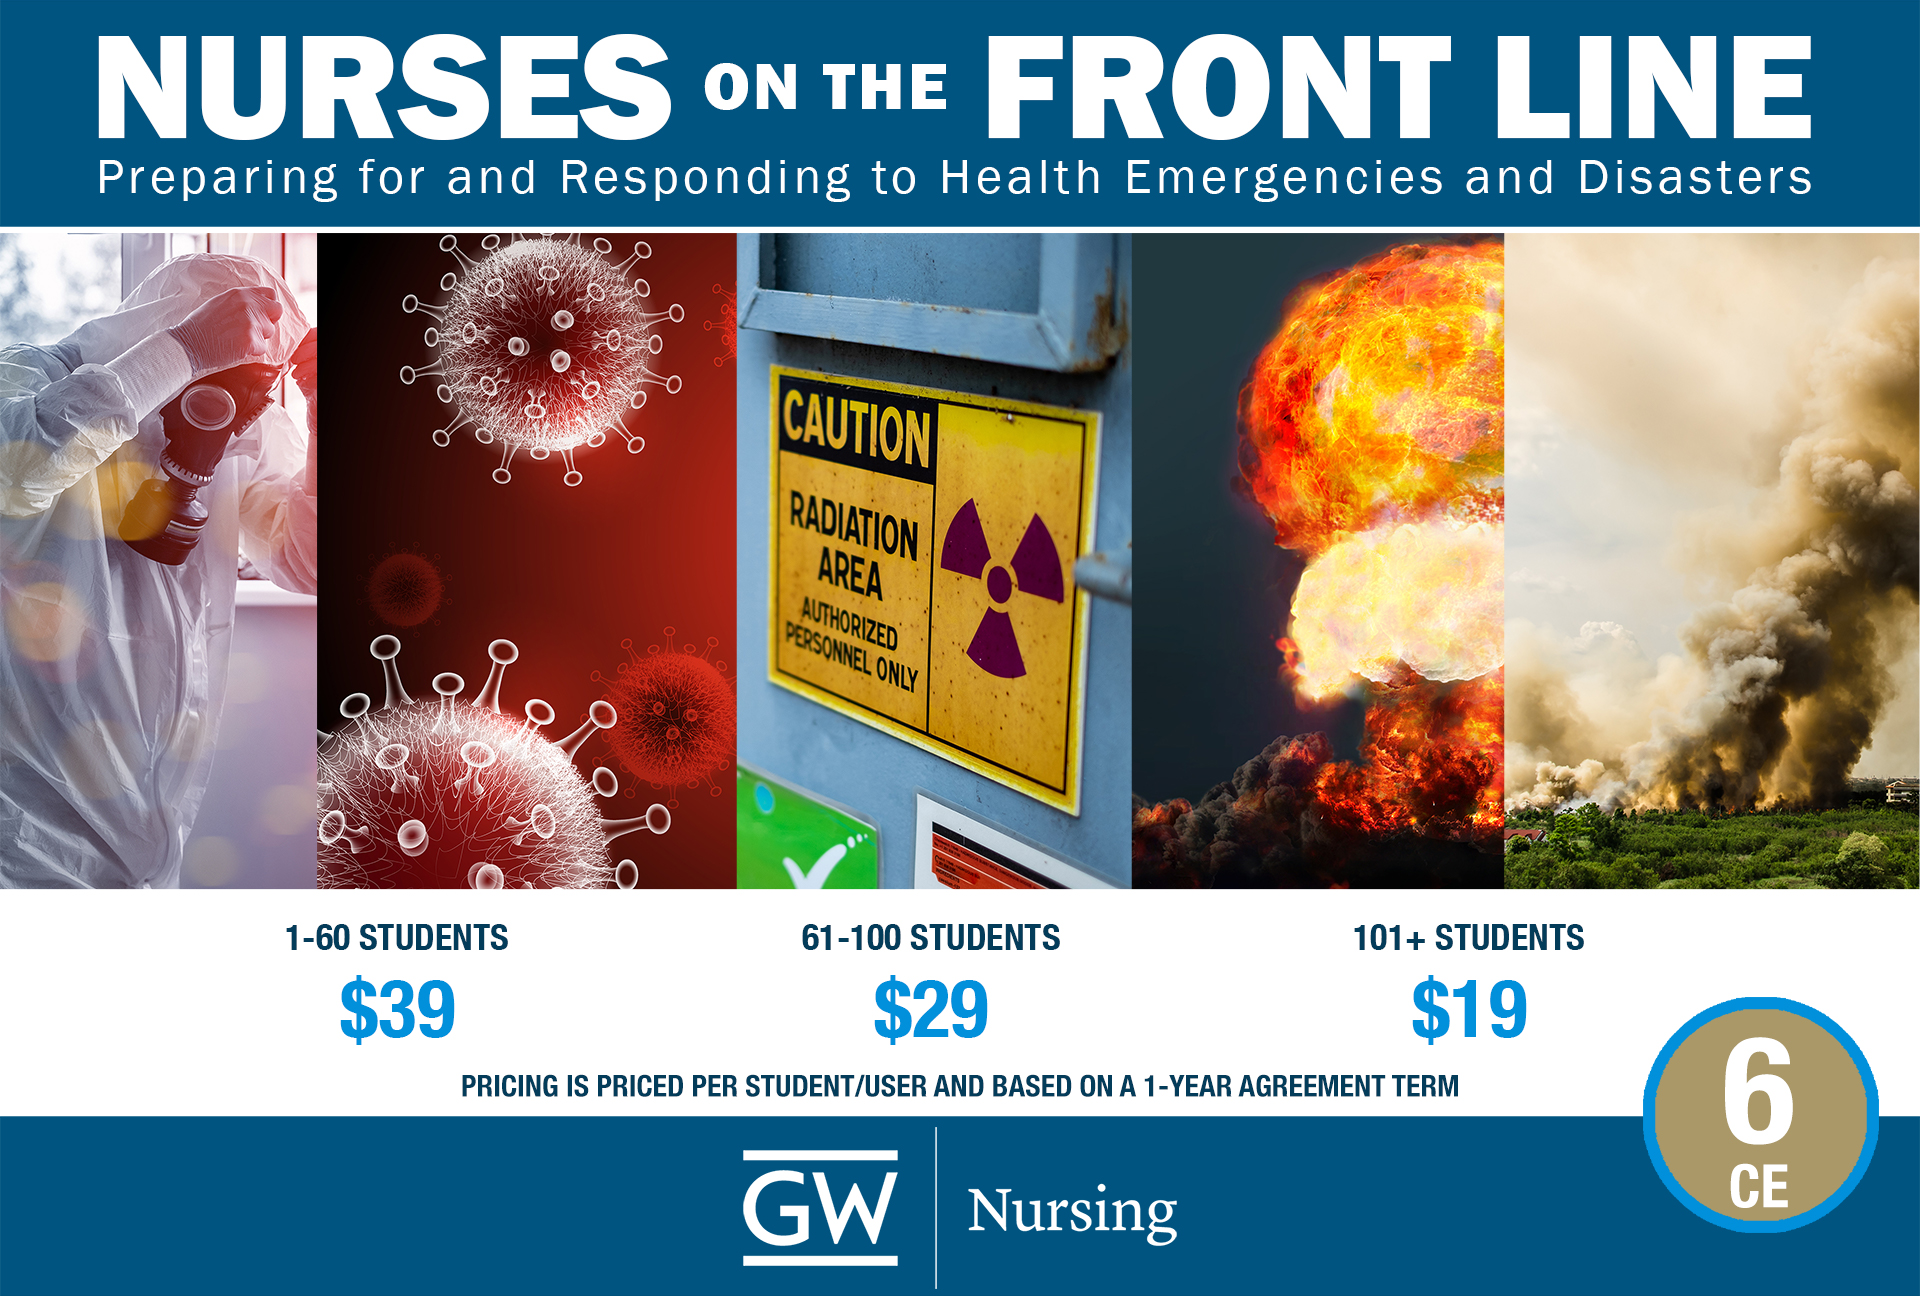 Nurses on the Front Line: Preparing for and Responding to Health Emergencies and Disasters